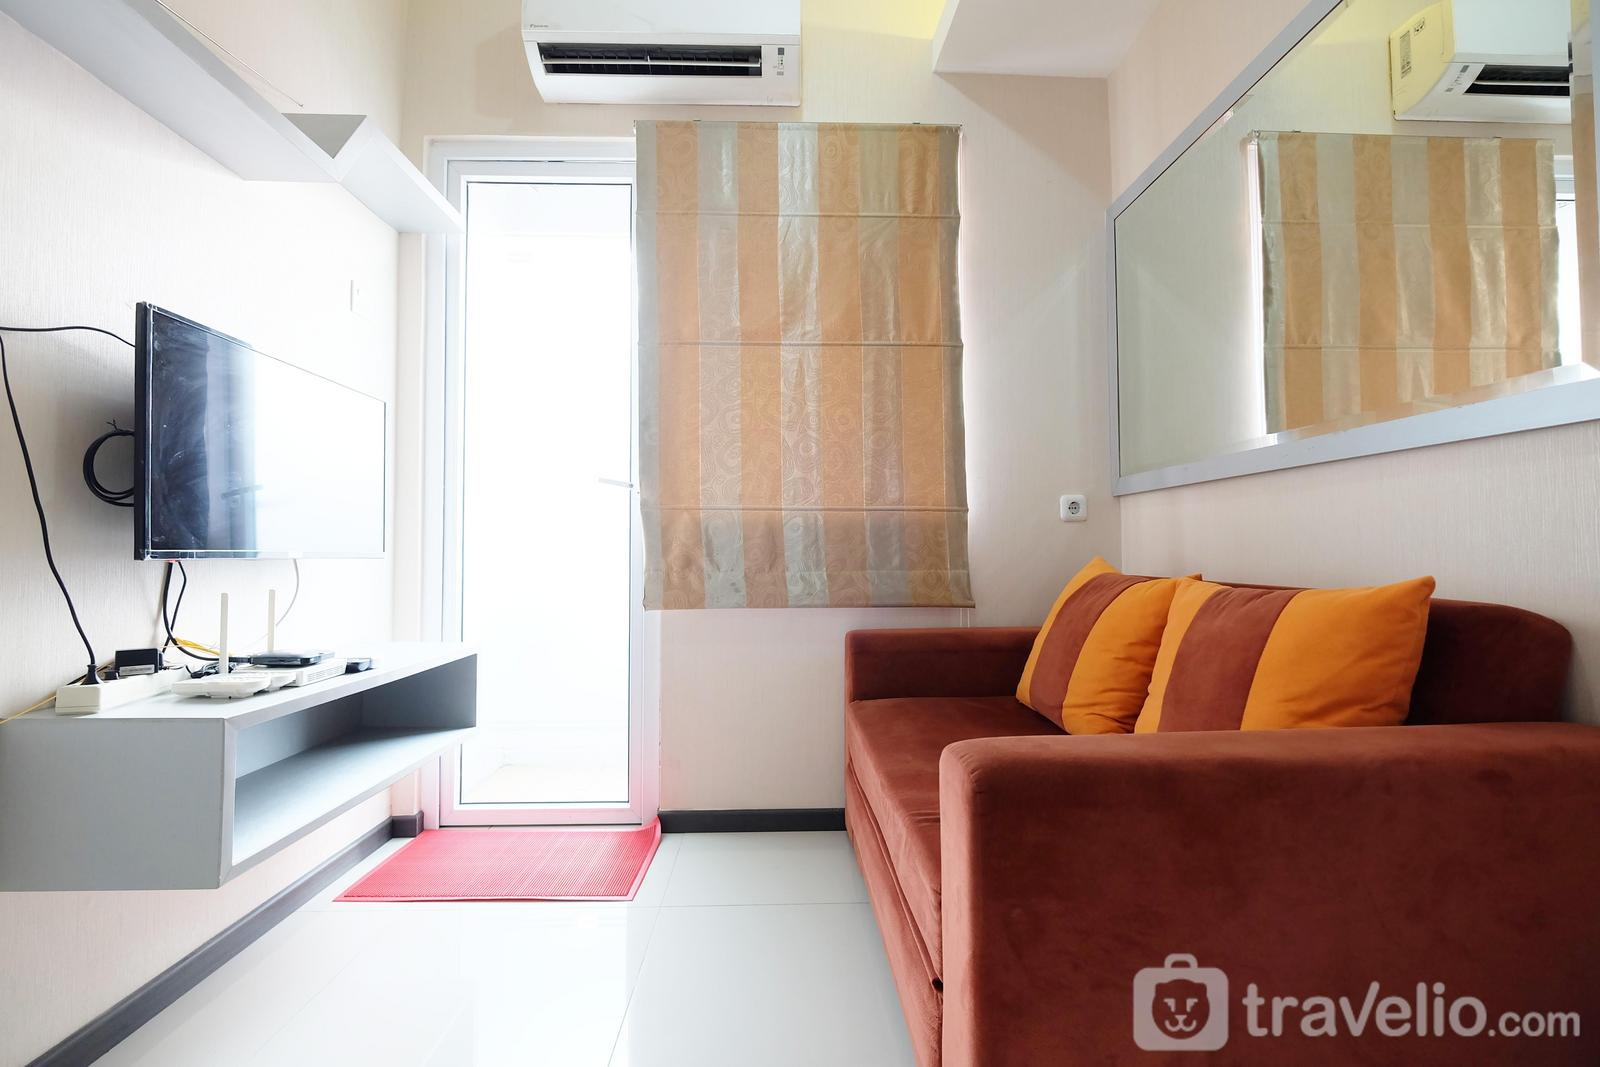 Green Pramuka Cempaka Putih - 2BR with Mall Access at Green Pramuka City Apartment By Travelio